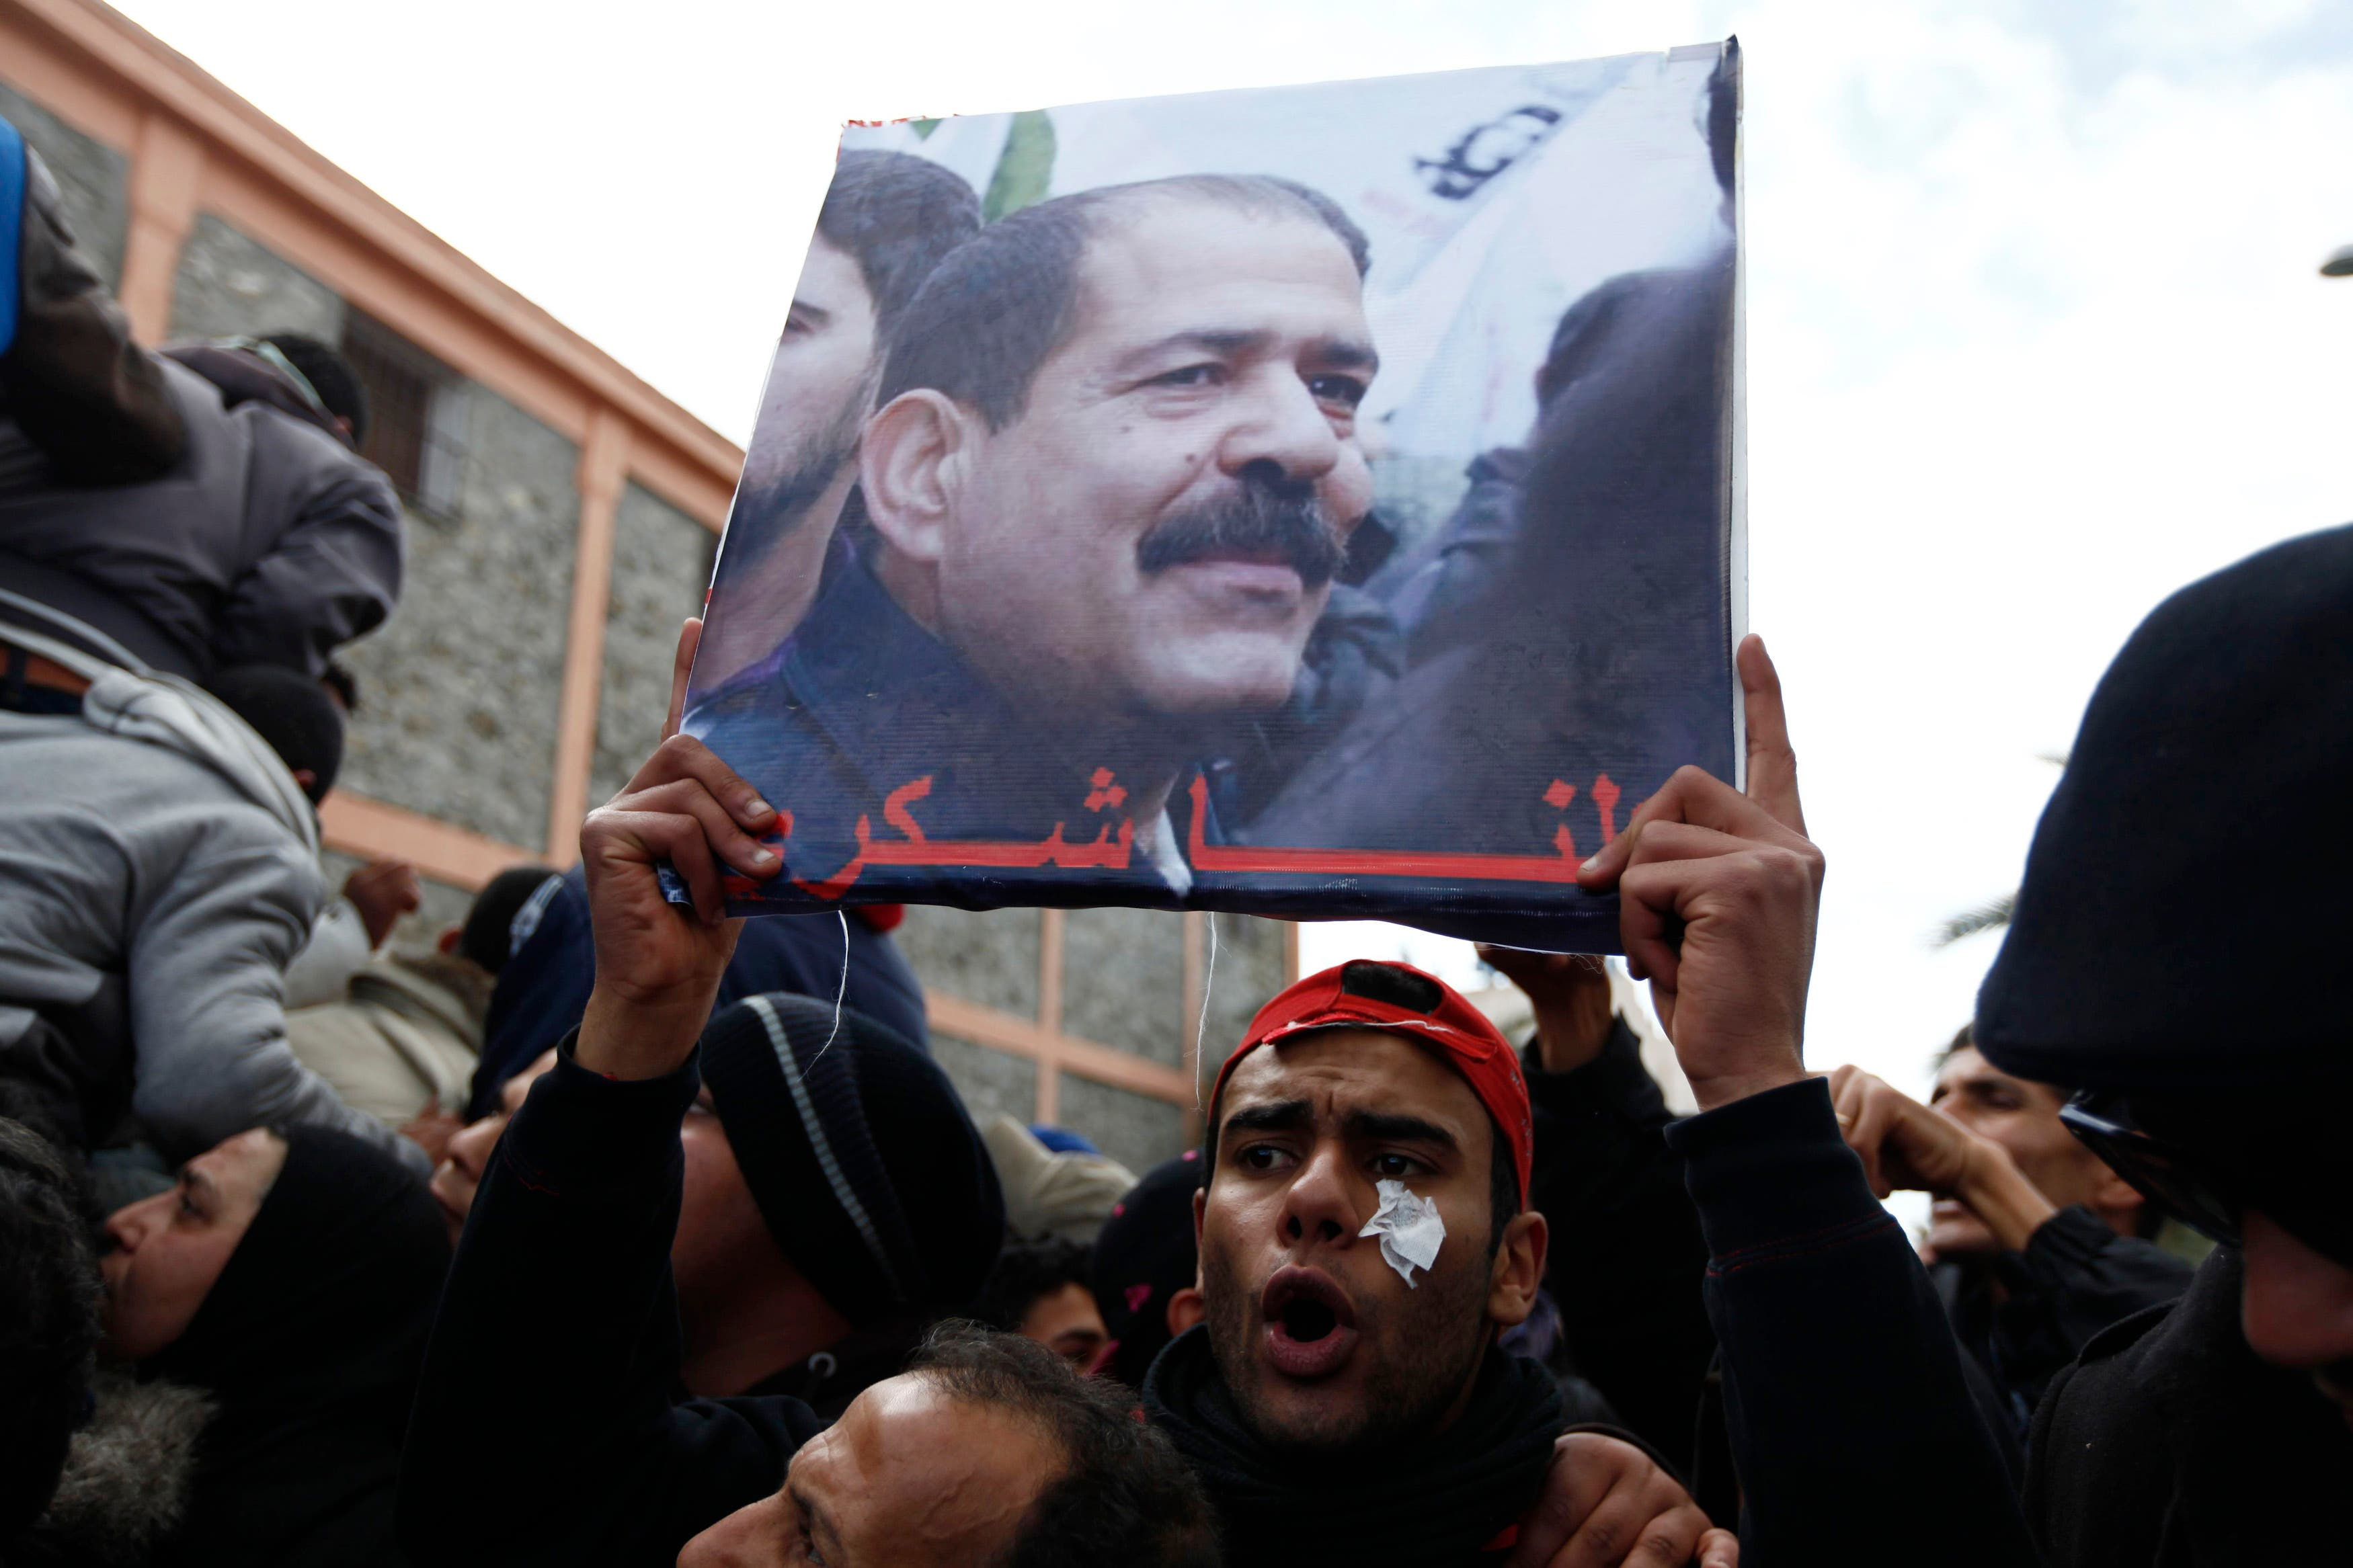 A placard with an image of the late secular opposition leader Chokri Belaid is displayed during his funeral procession in the Jebel Jelloud district in Tunis Feb. 8, 2013. (Reuters)